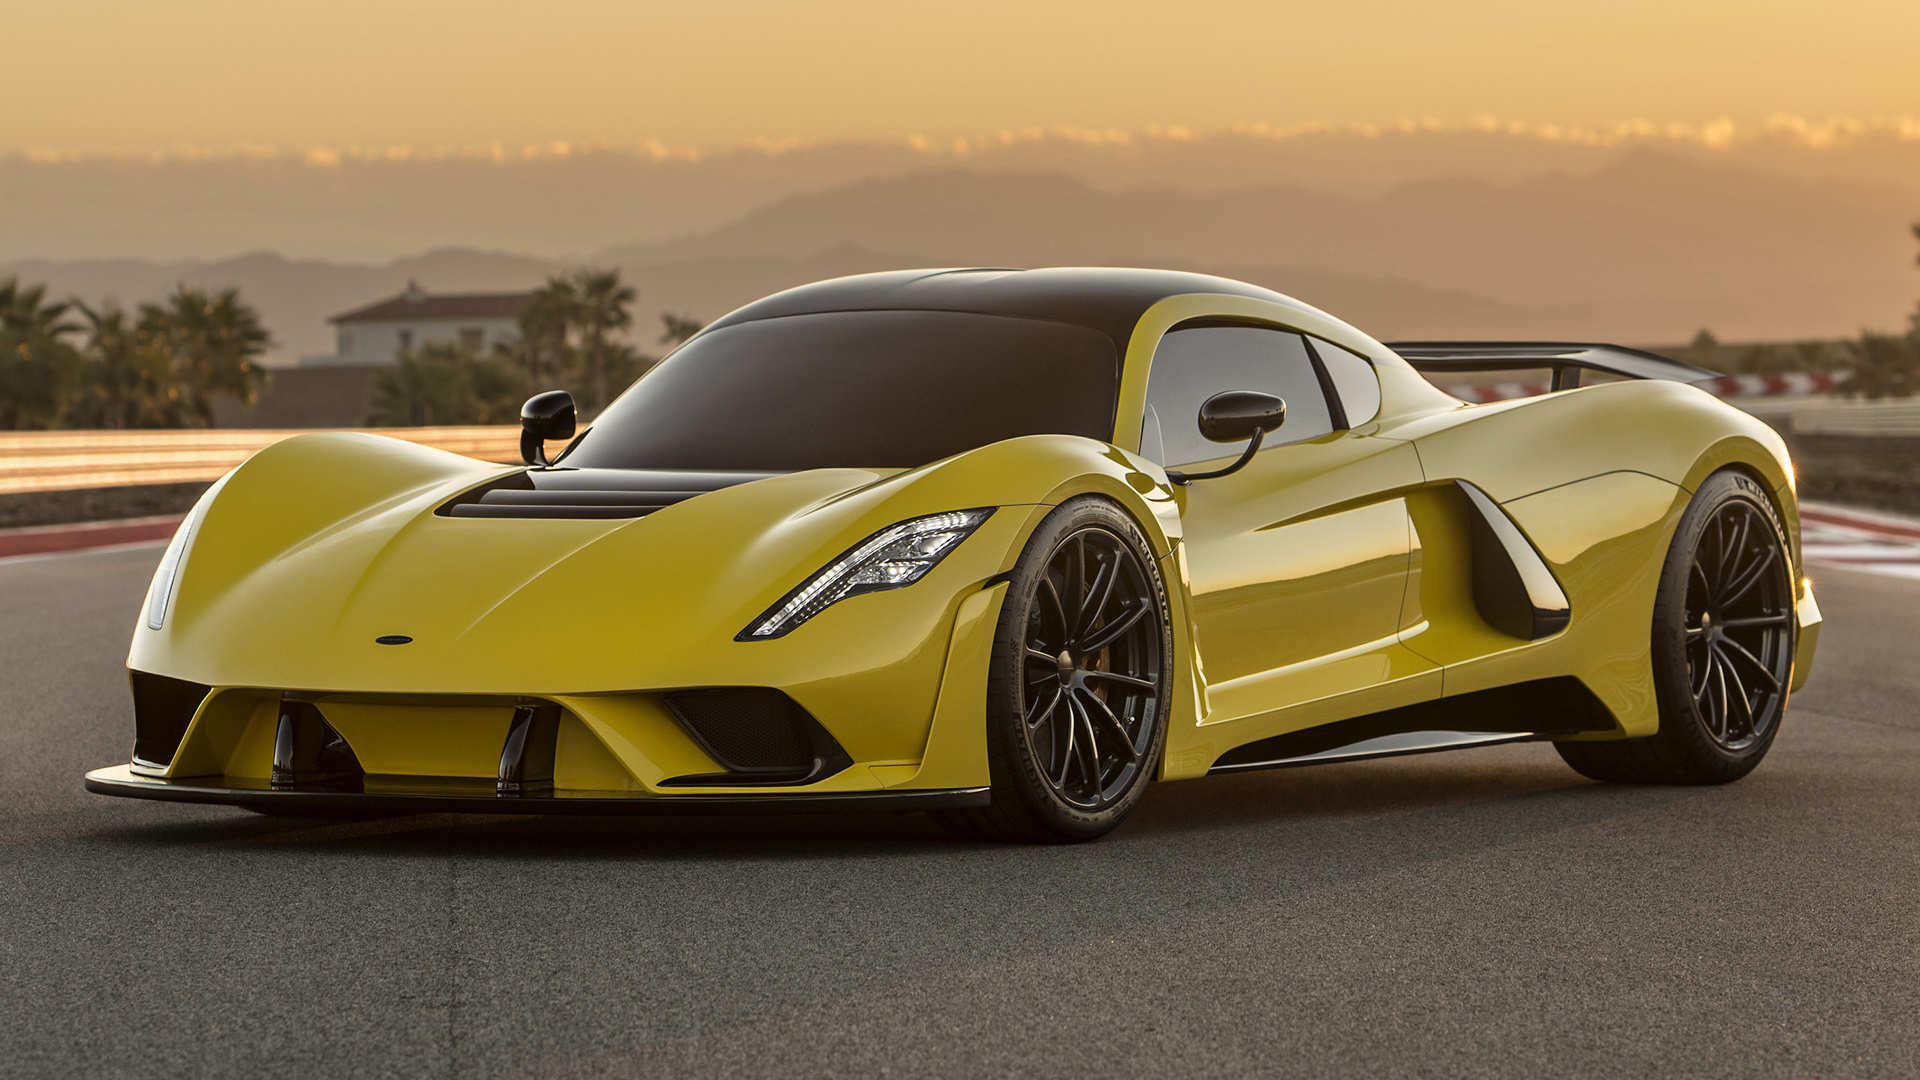 Nissan Sports Car >> 2019 Hennessey Venom F5 - Wallpapers and HD Images | Car Pixel